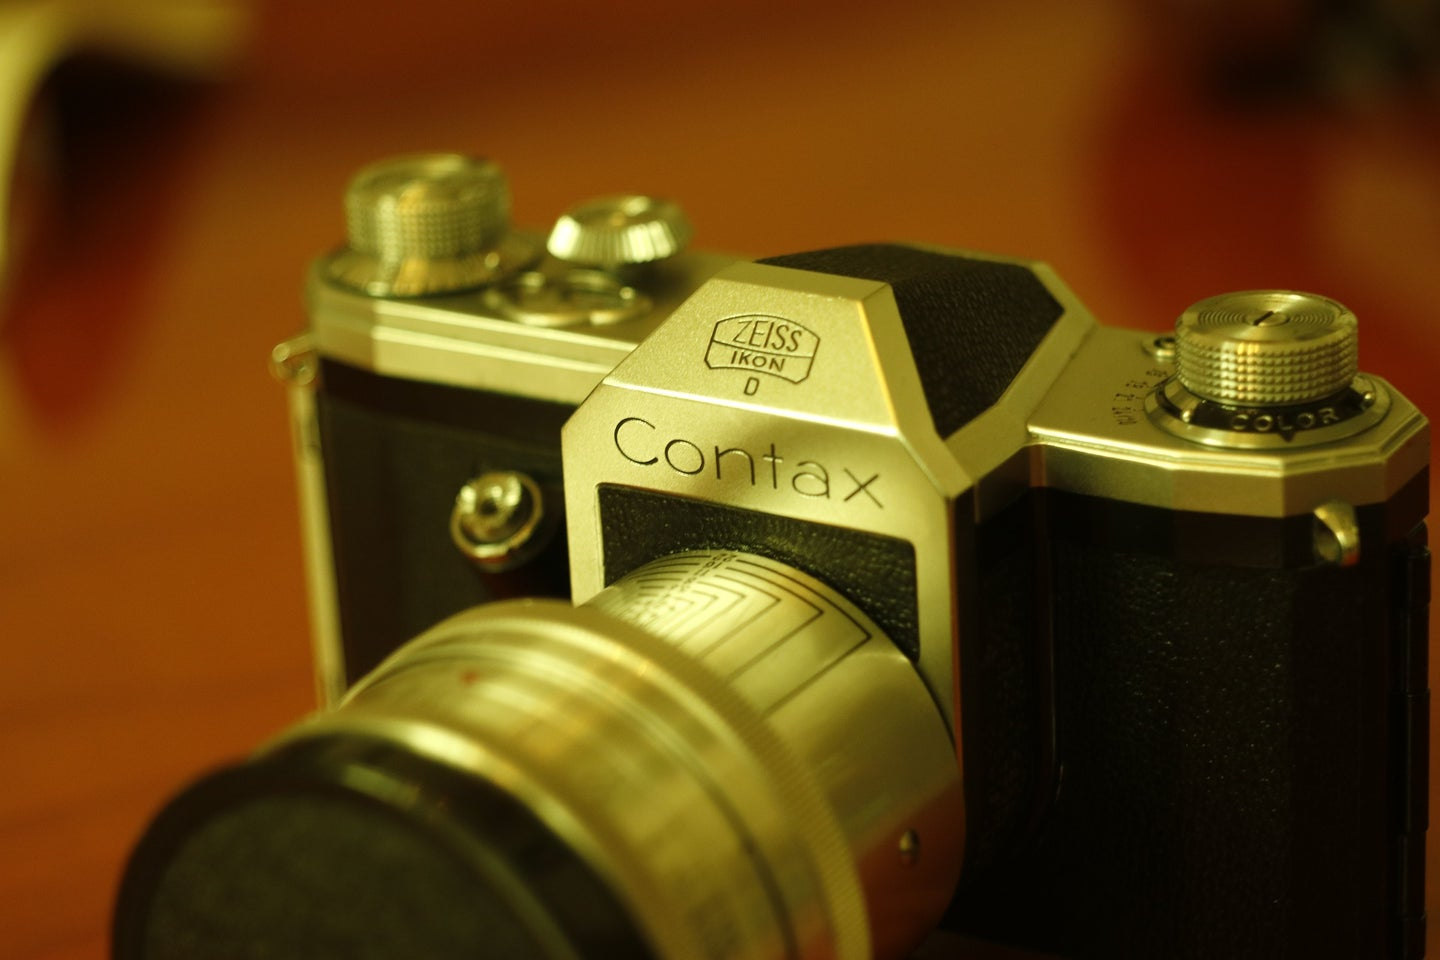 Vintage Contax camera on wooden table